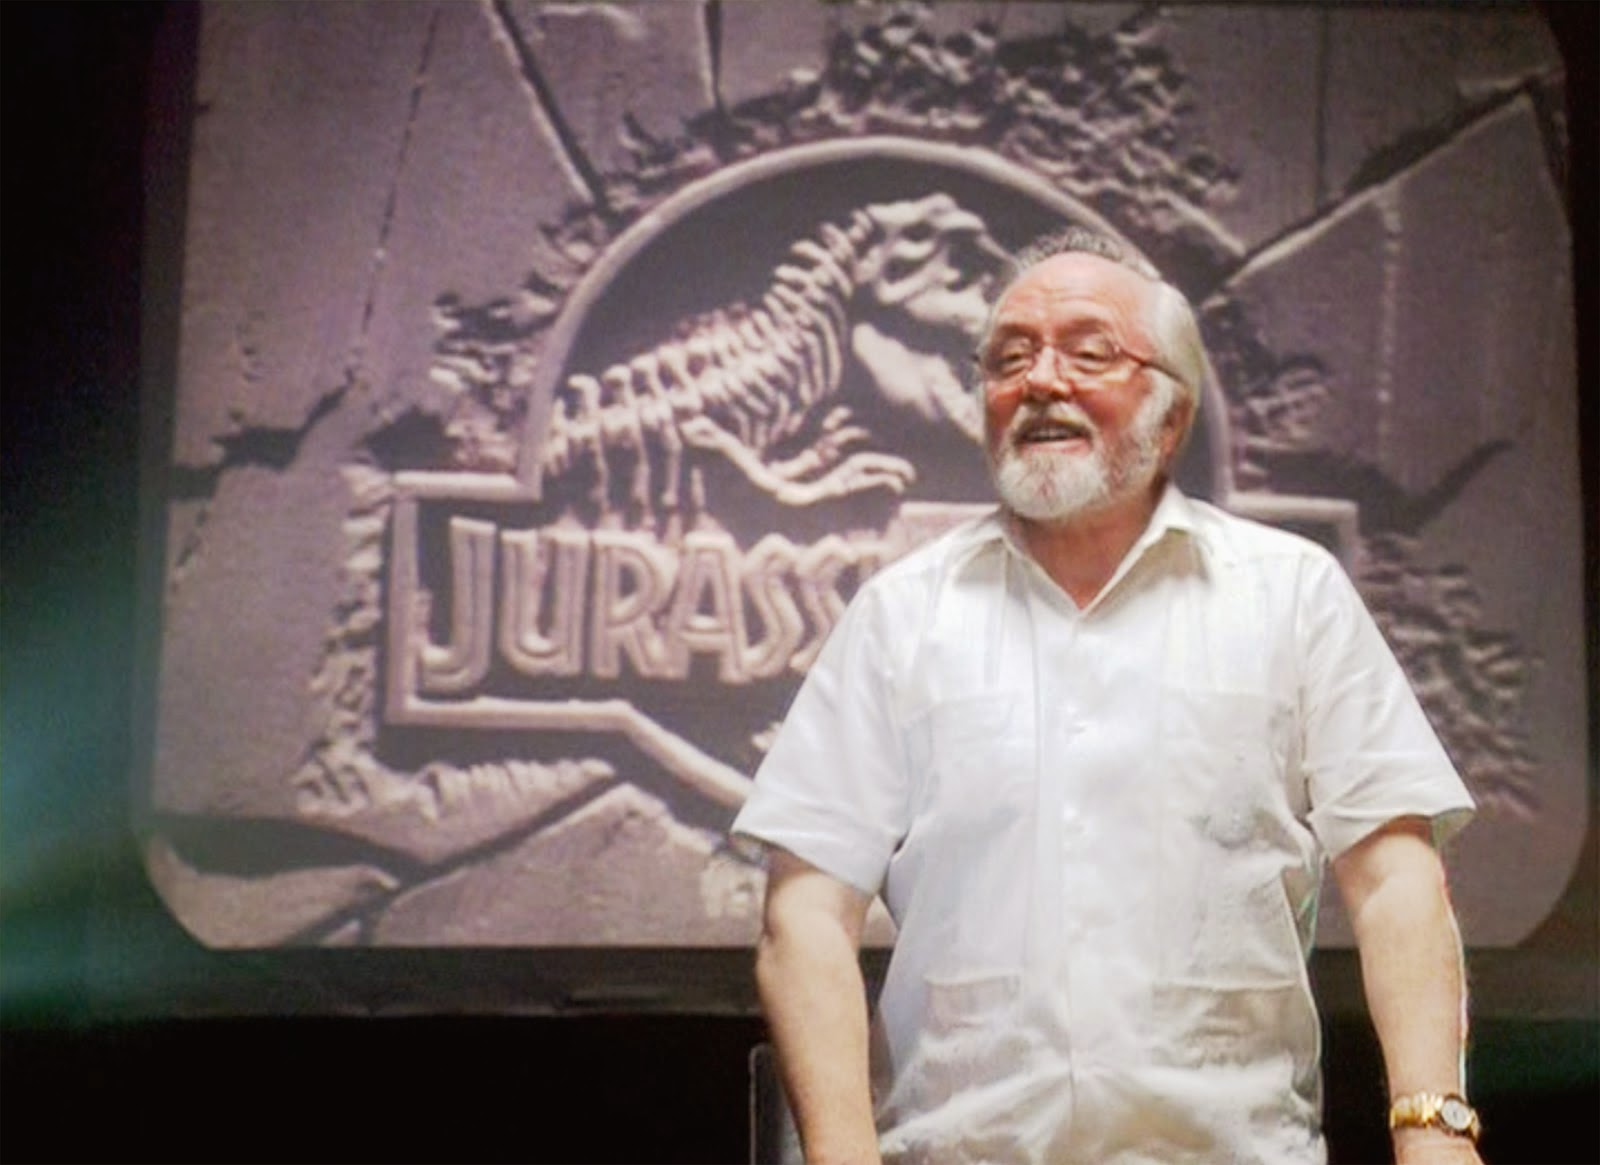 Muerte del actor y director Richard Attenborough a los 90 años